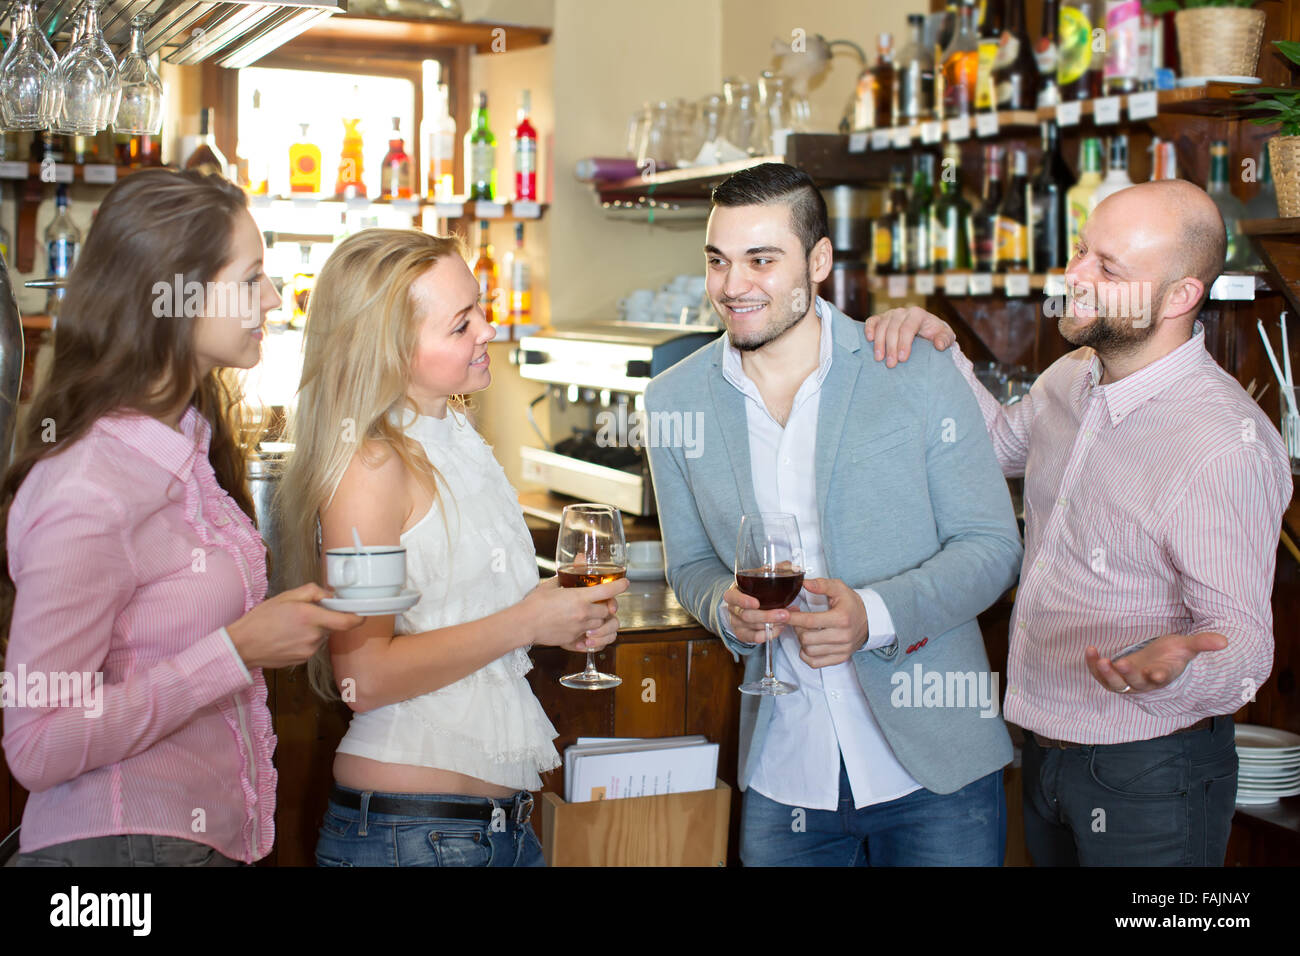 Casual acquaintance of young happy adults at bar. Selective focus - Stock Image